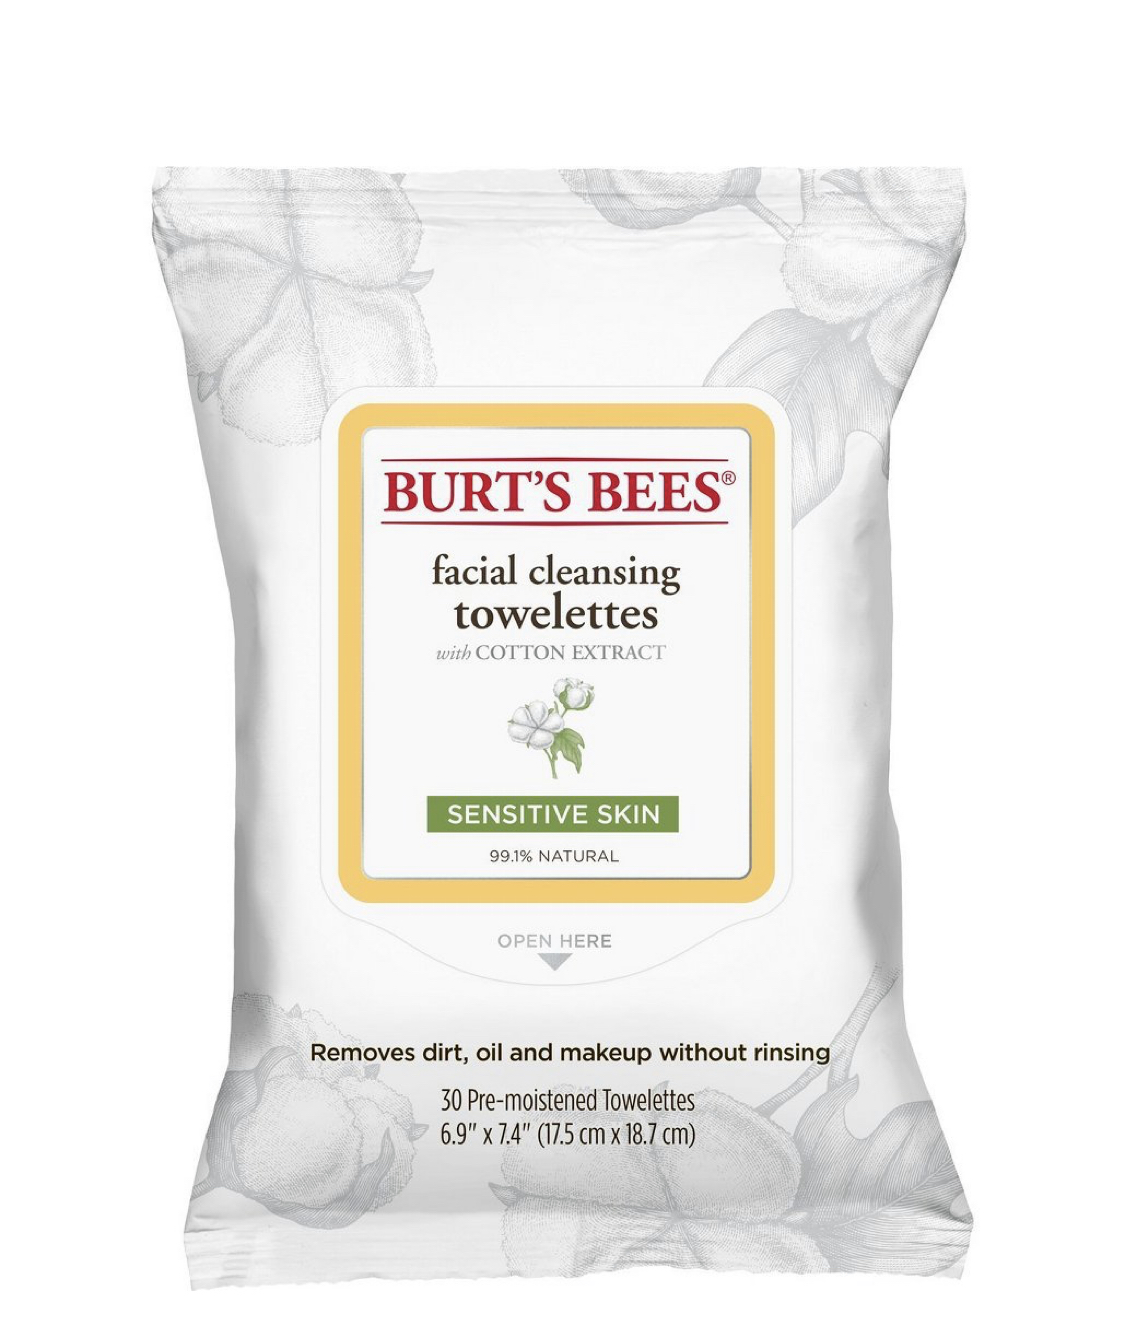 Burt's Bees Cotton Extract Sensitive Facial Cleansing Towlettes